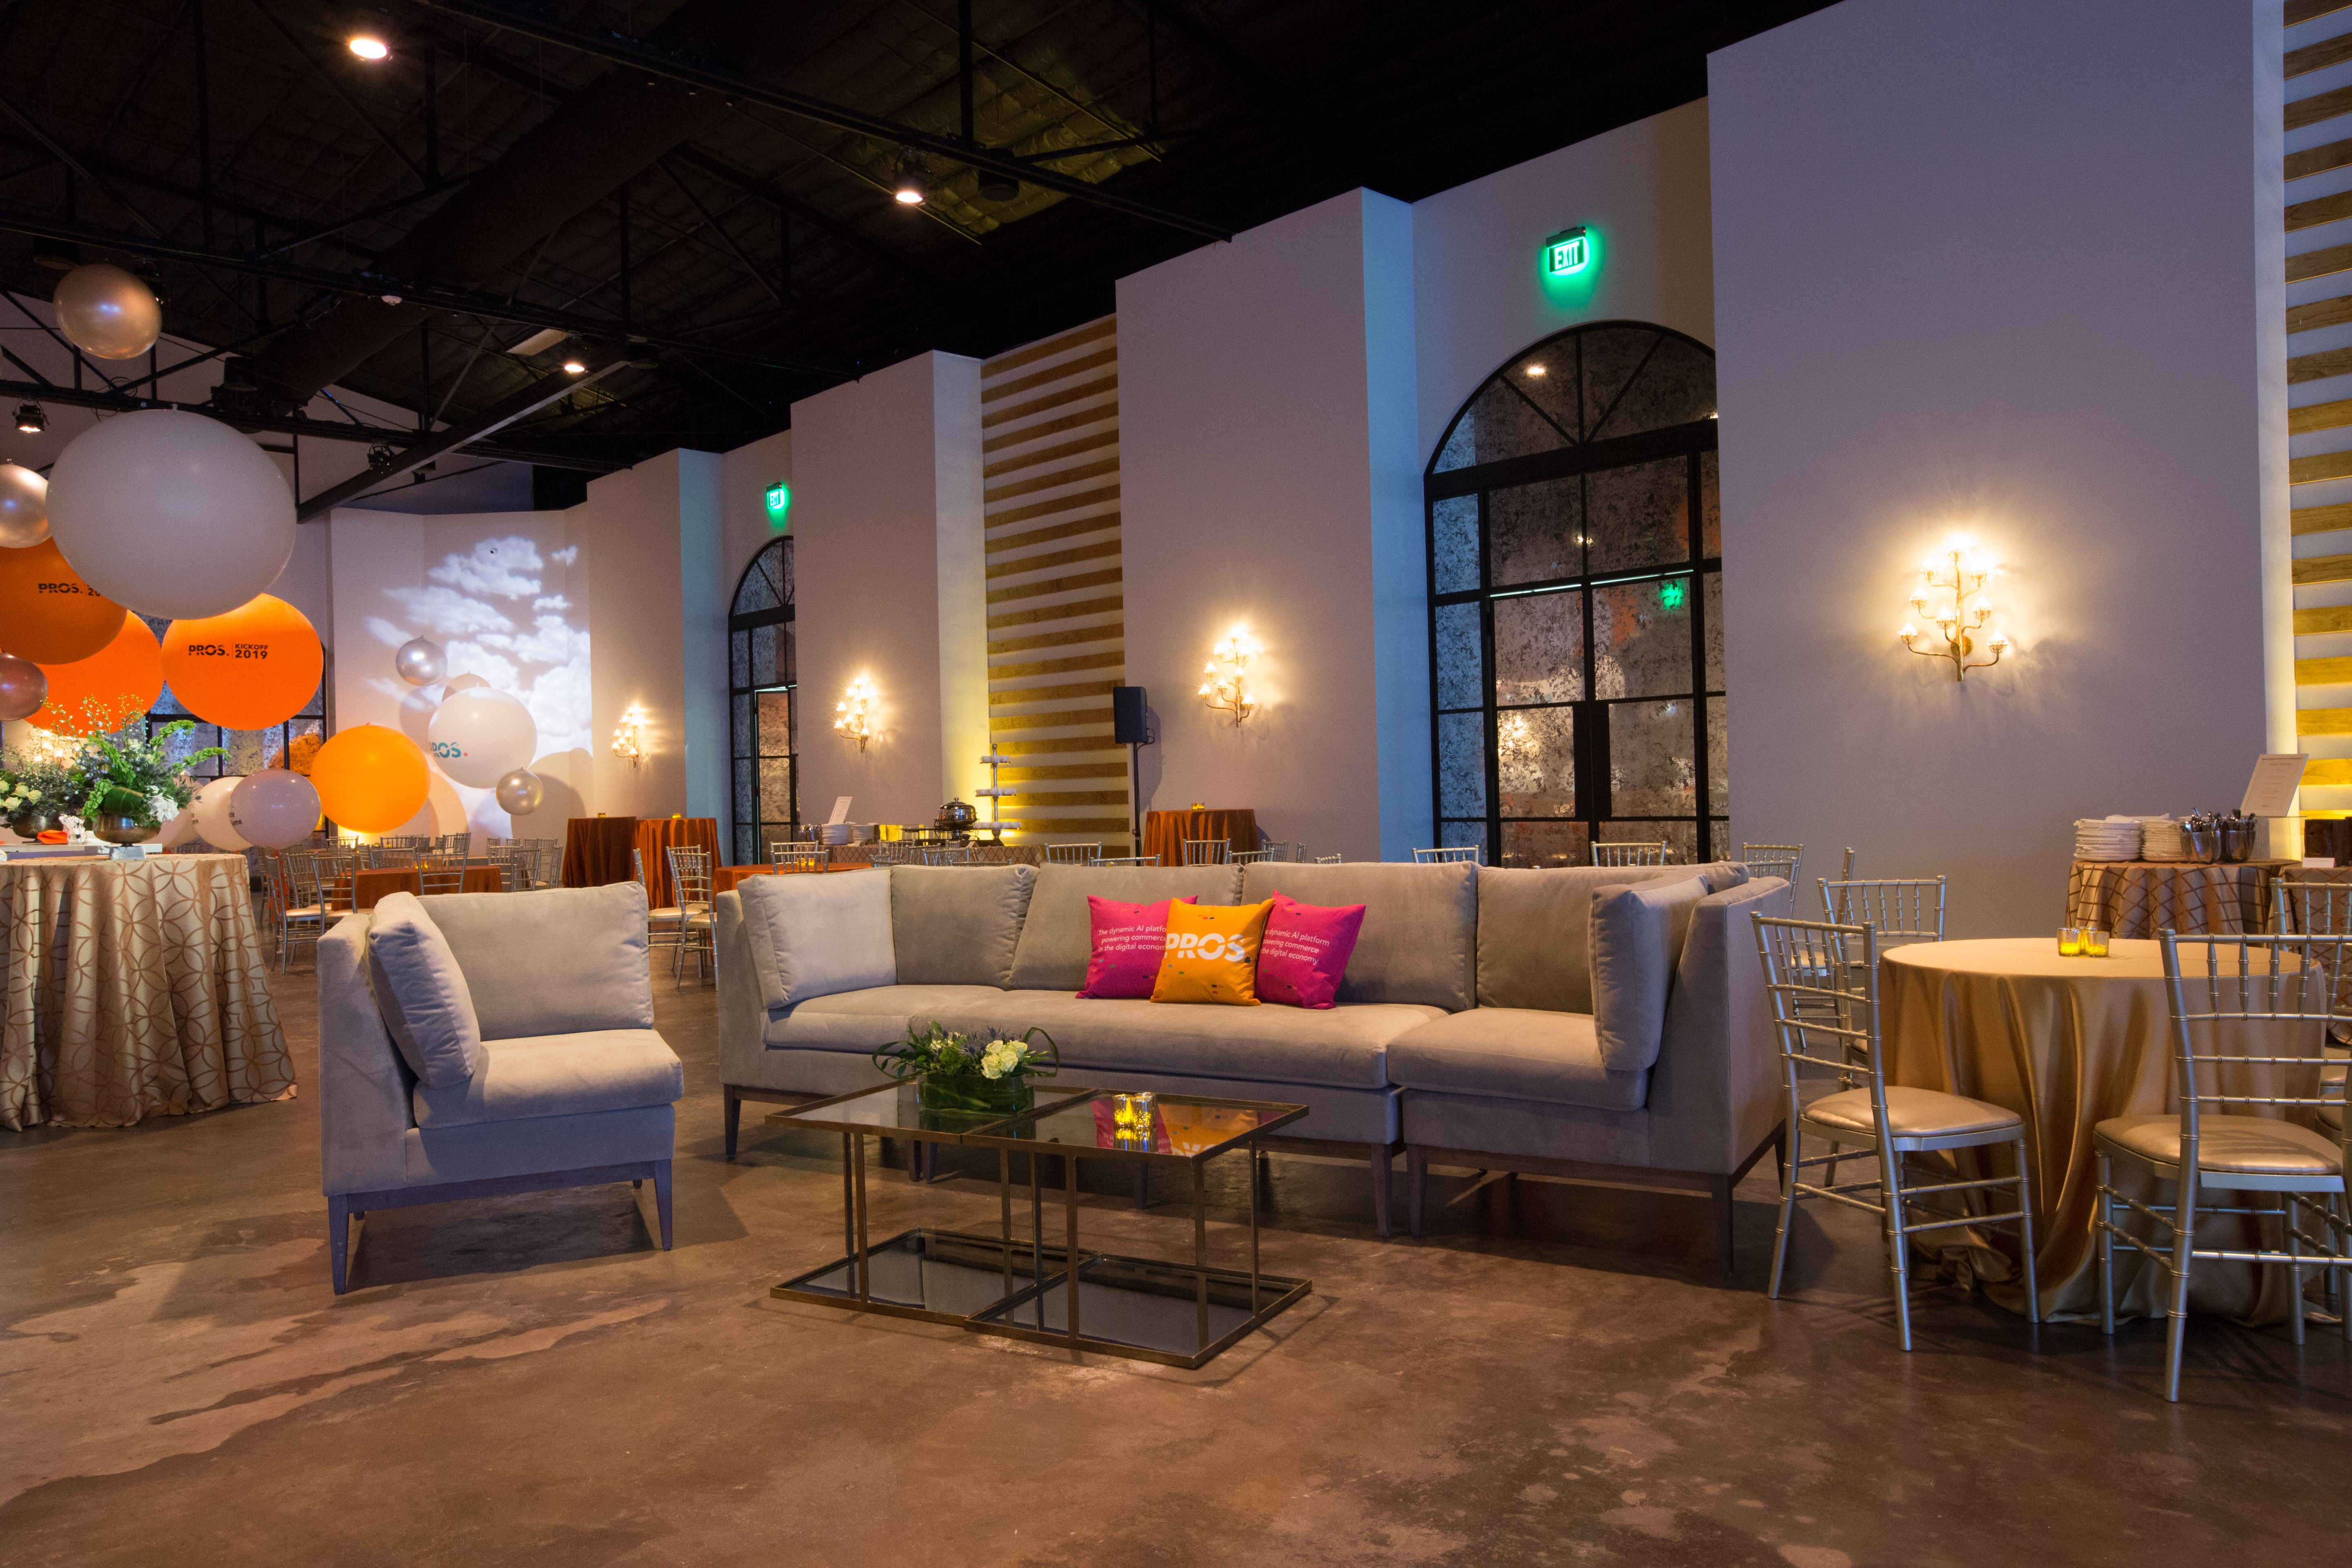 Houston Venue The Revaire Lounge Furniture Lighting Balloons Event Design